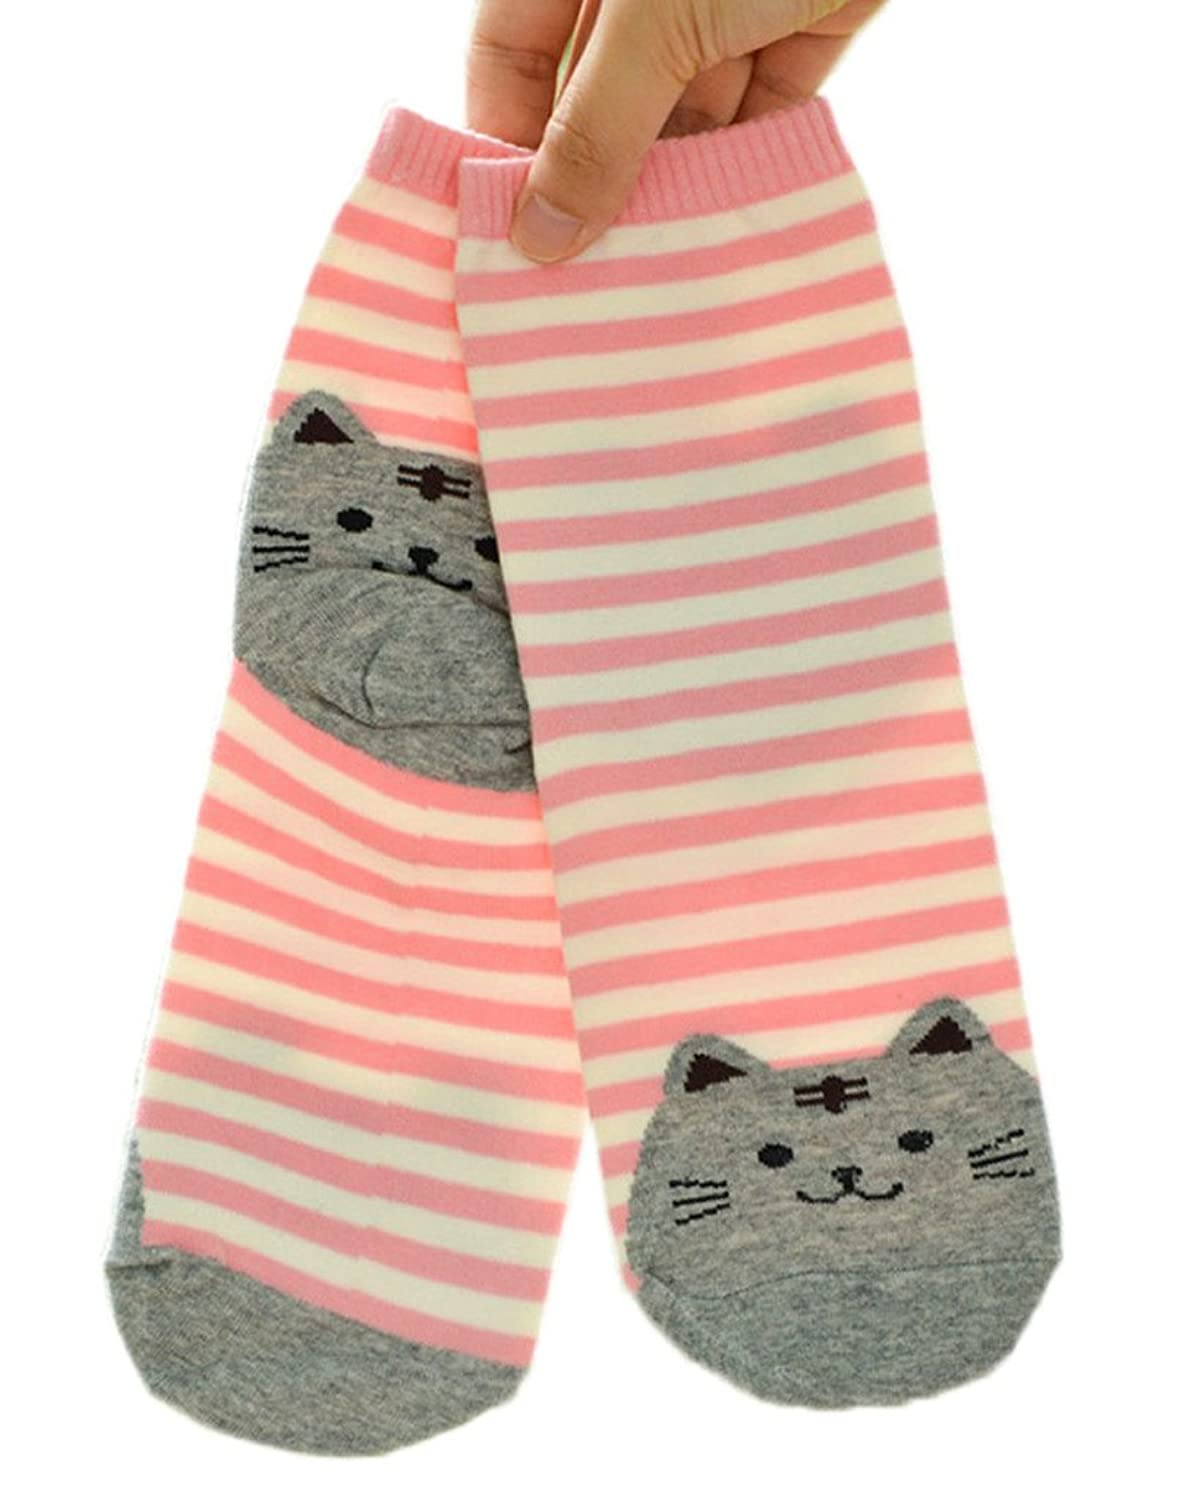 Woo2u Women Cat Cartoon Stripes Cotton Ankle Socks